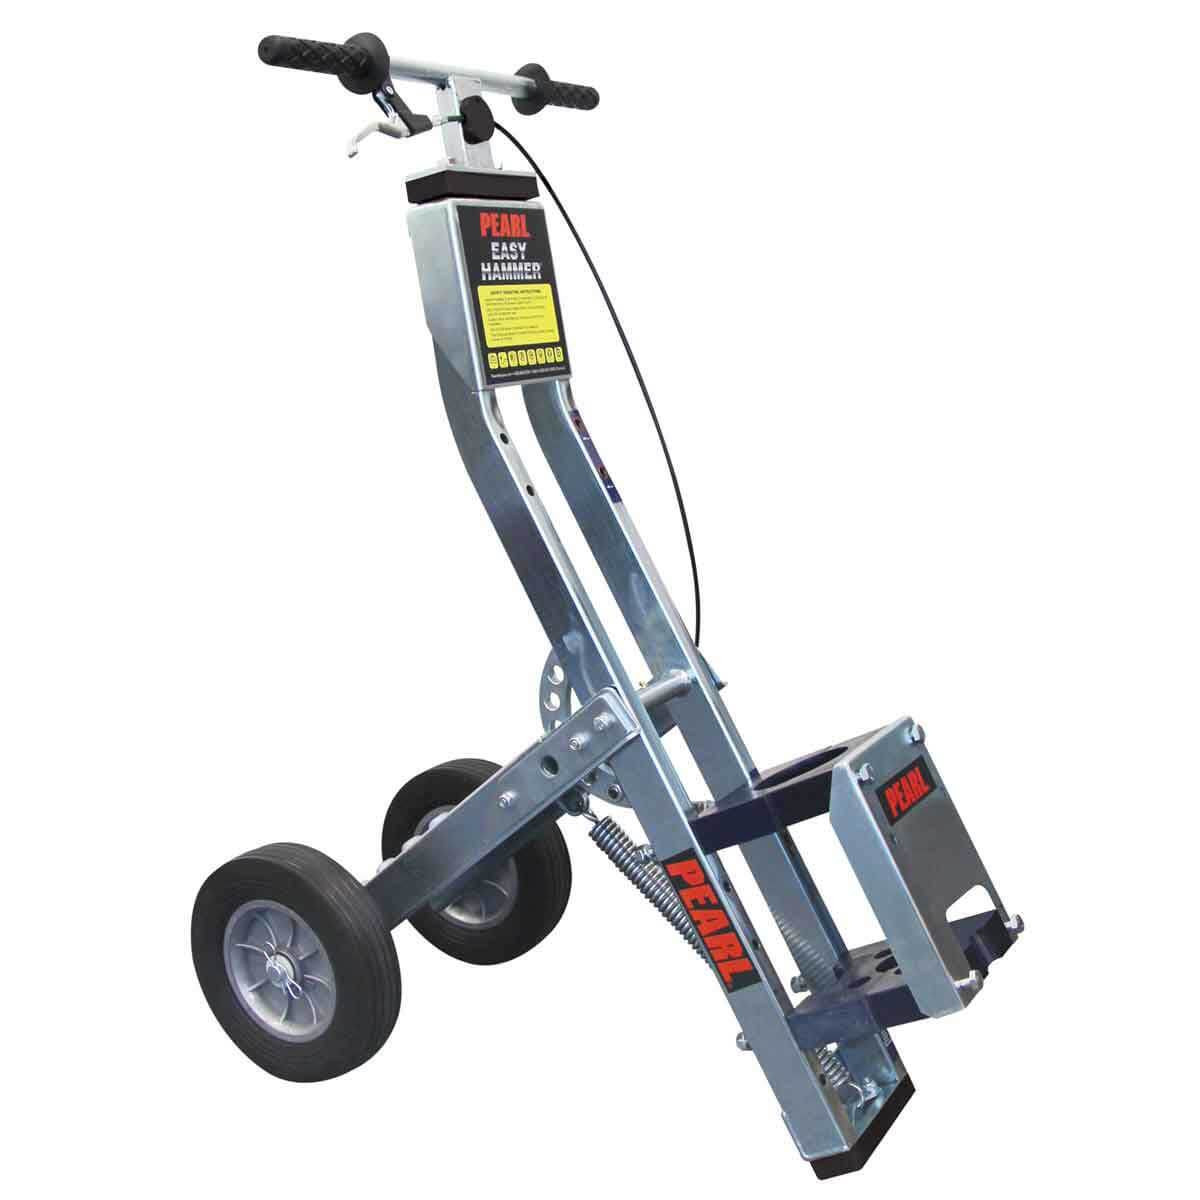 Pa01ht Pearl Easy Hammer Trolley Contractors Direct